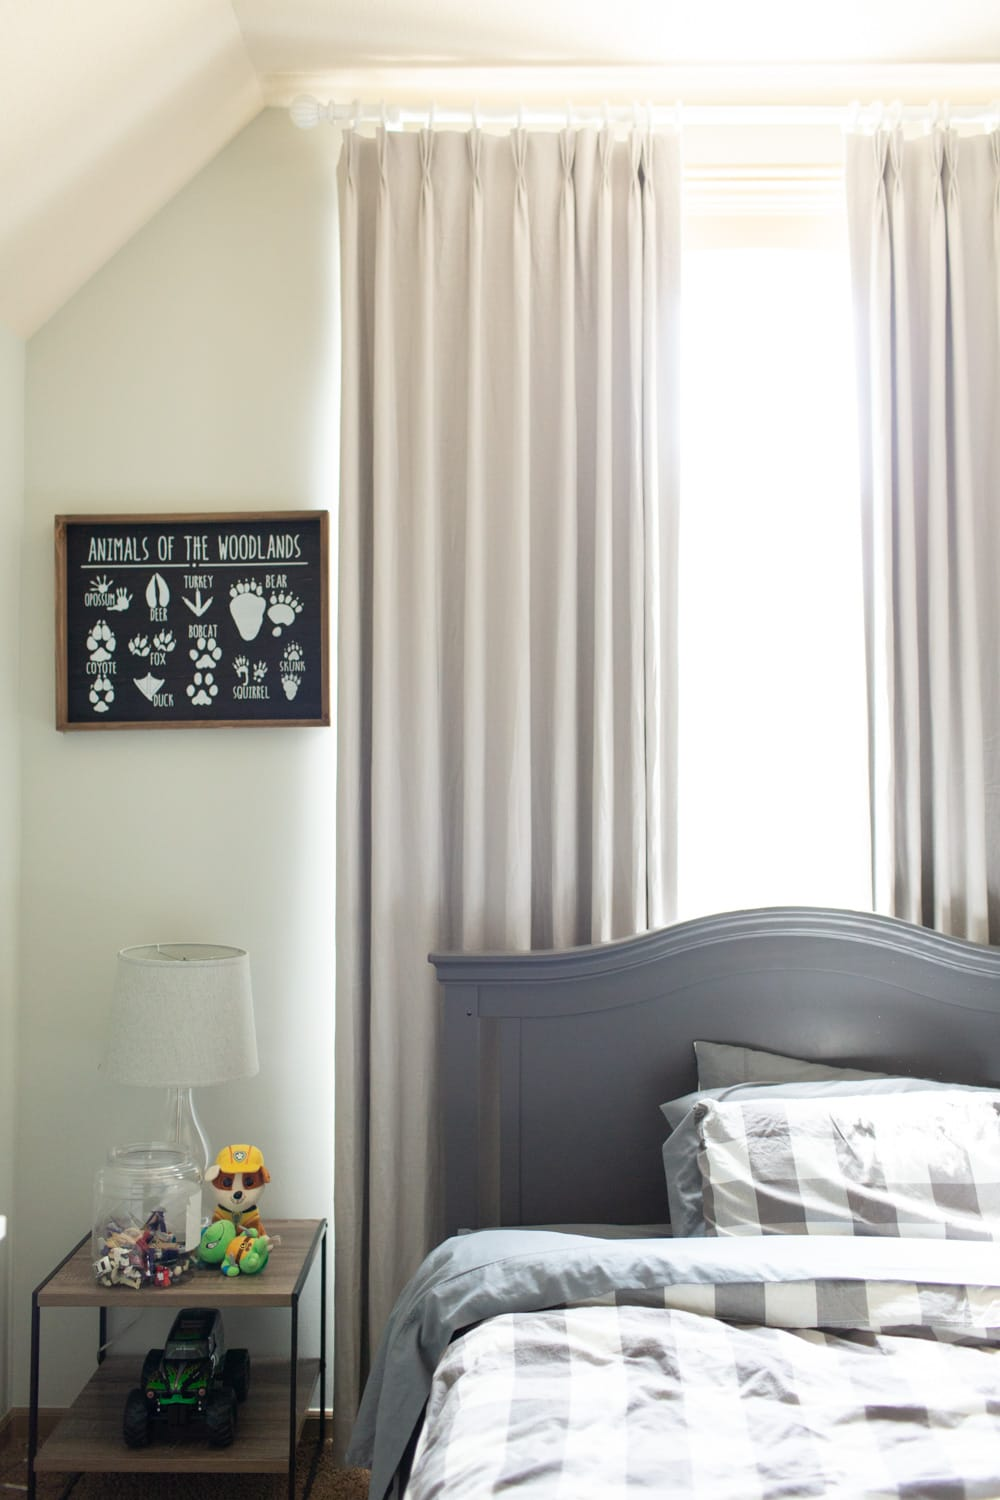 Benjamin Moore Gray Owl in nursery and bedroom against curtains